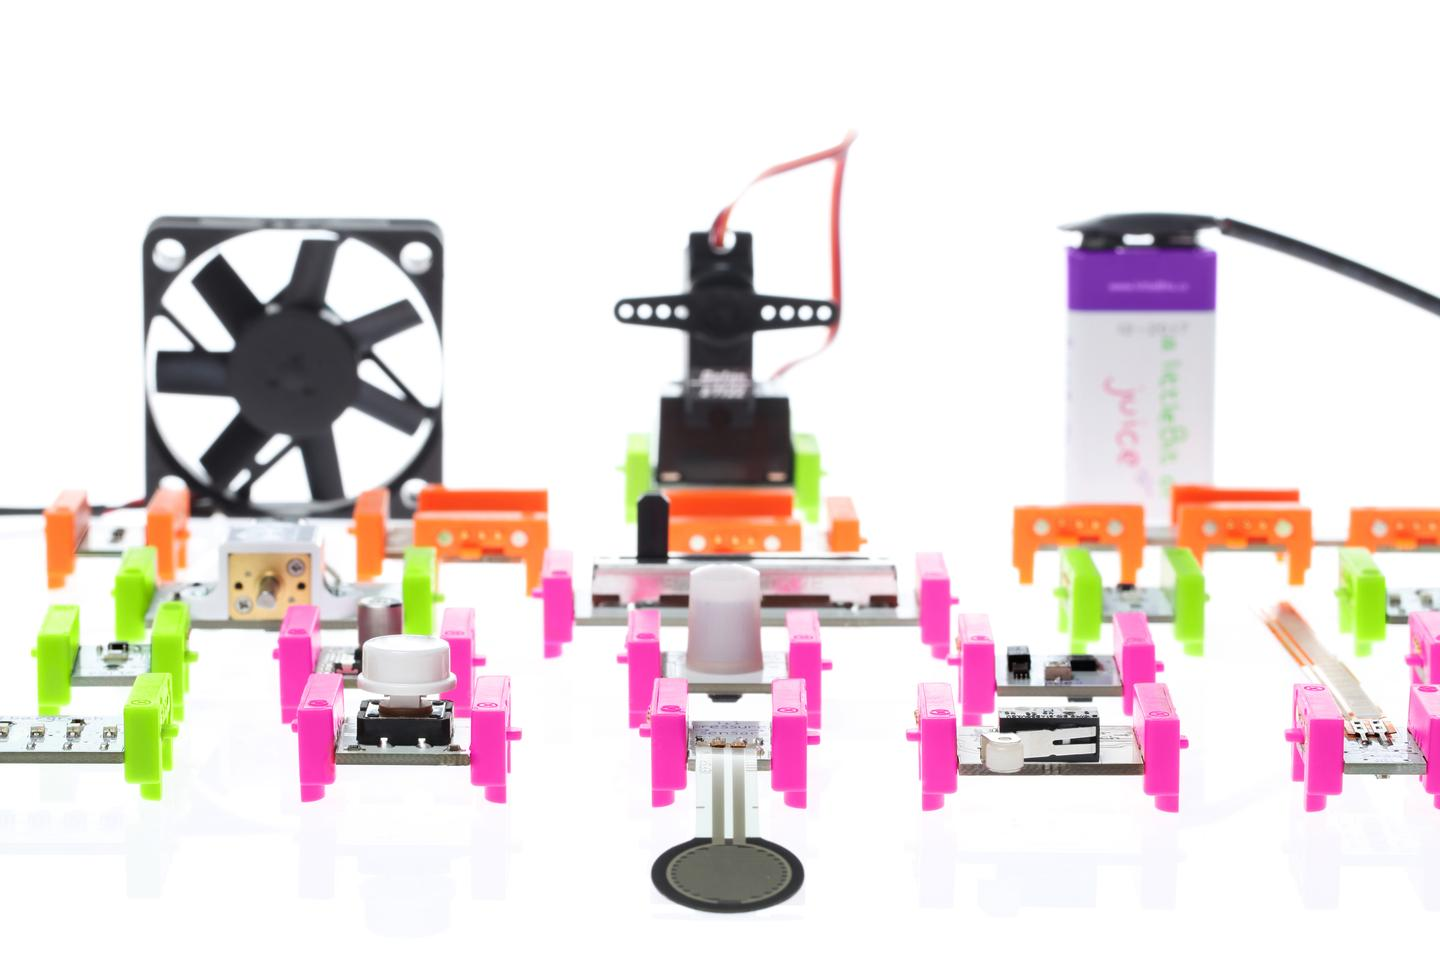 littleBits electronic building blocks lets kids and adults create simple circuits or inventive projects (Photo: littleBits)